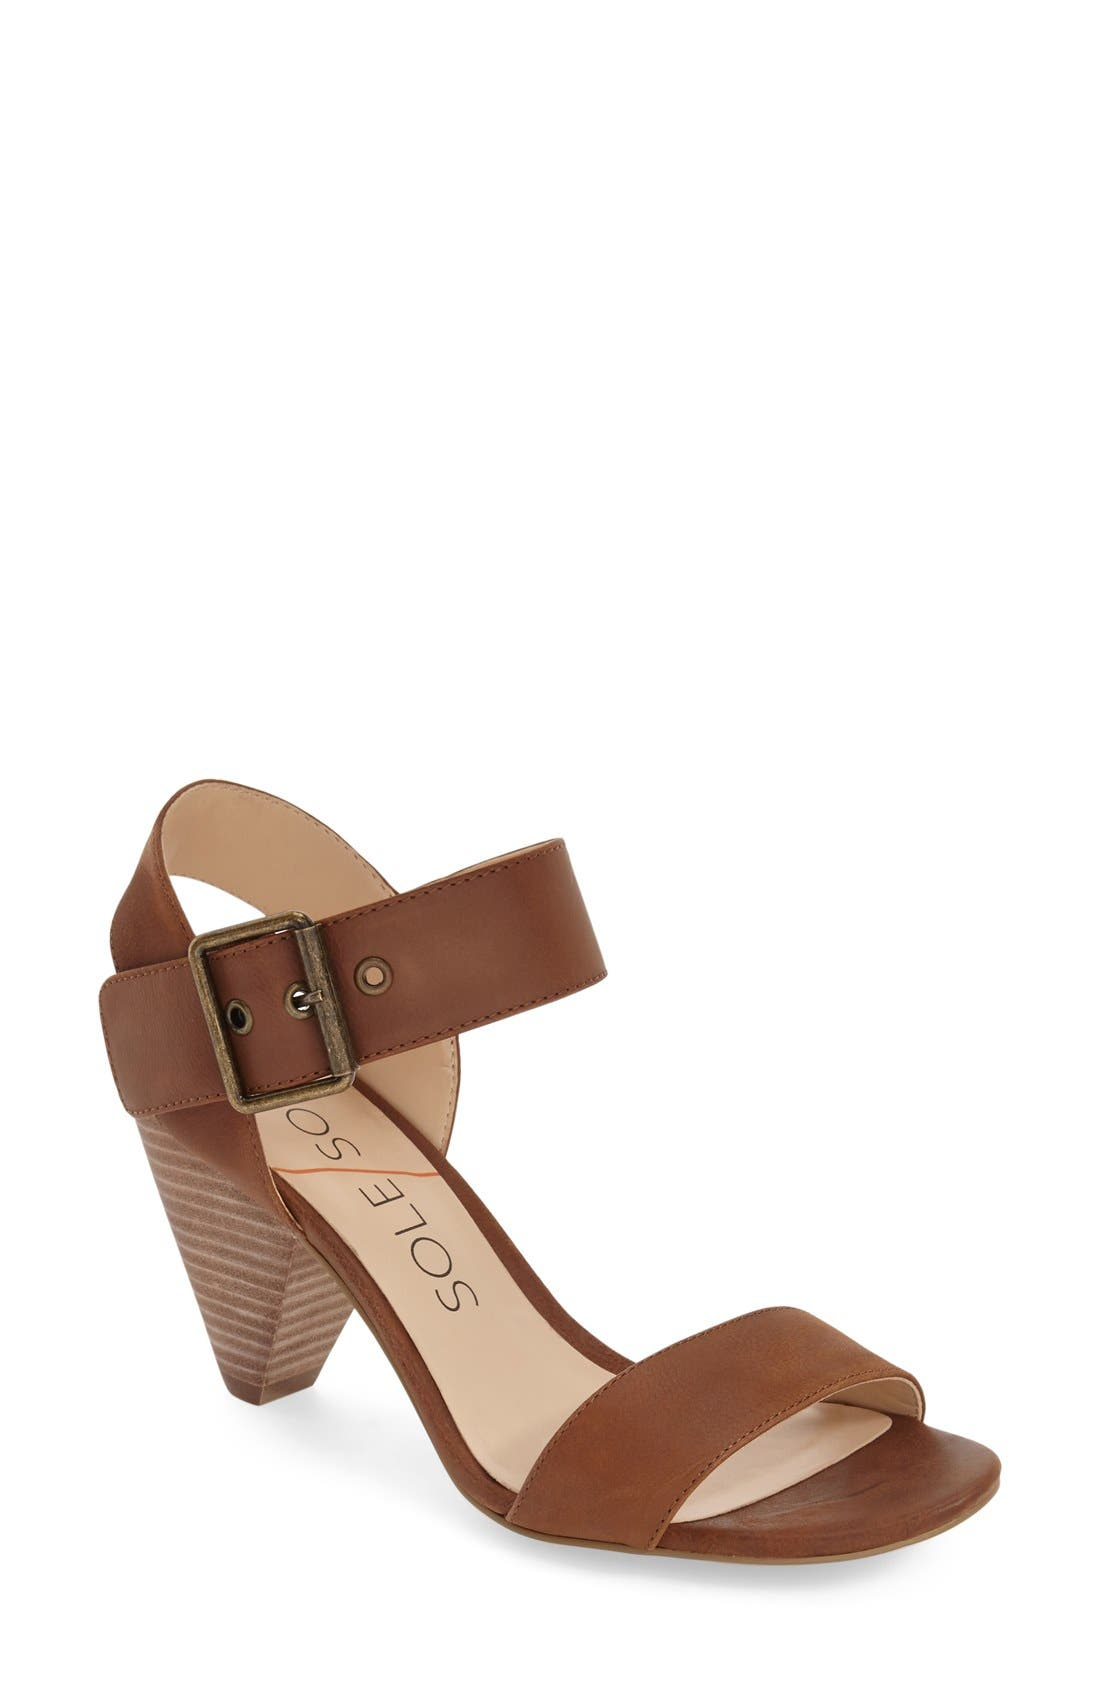 Alternate Image 1 Selected - Sole Society 'Missy' Sandal (Women)